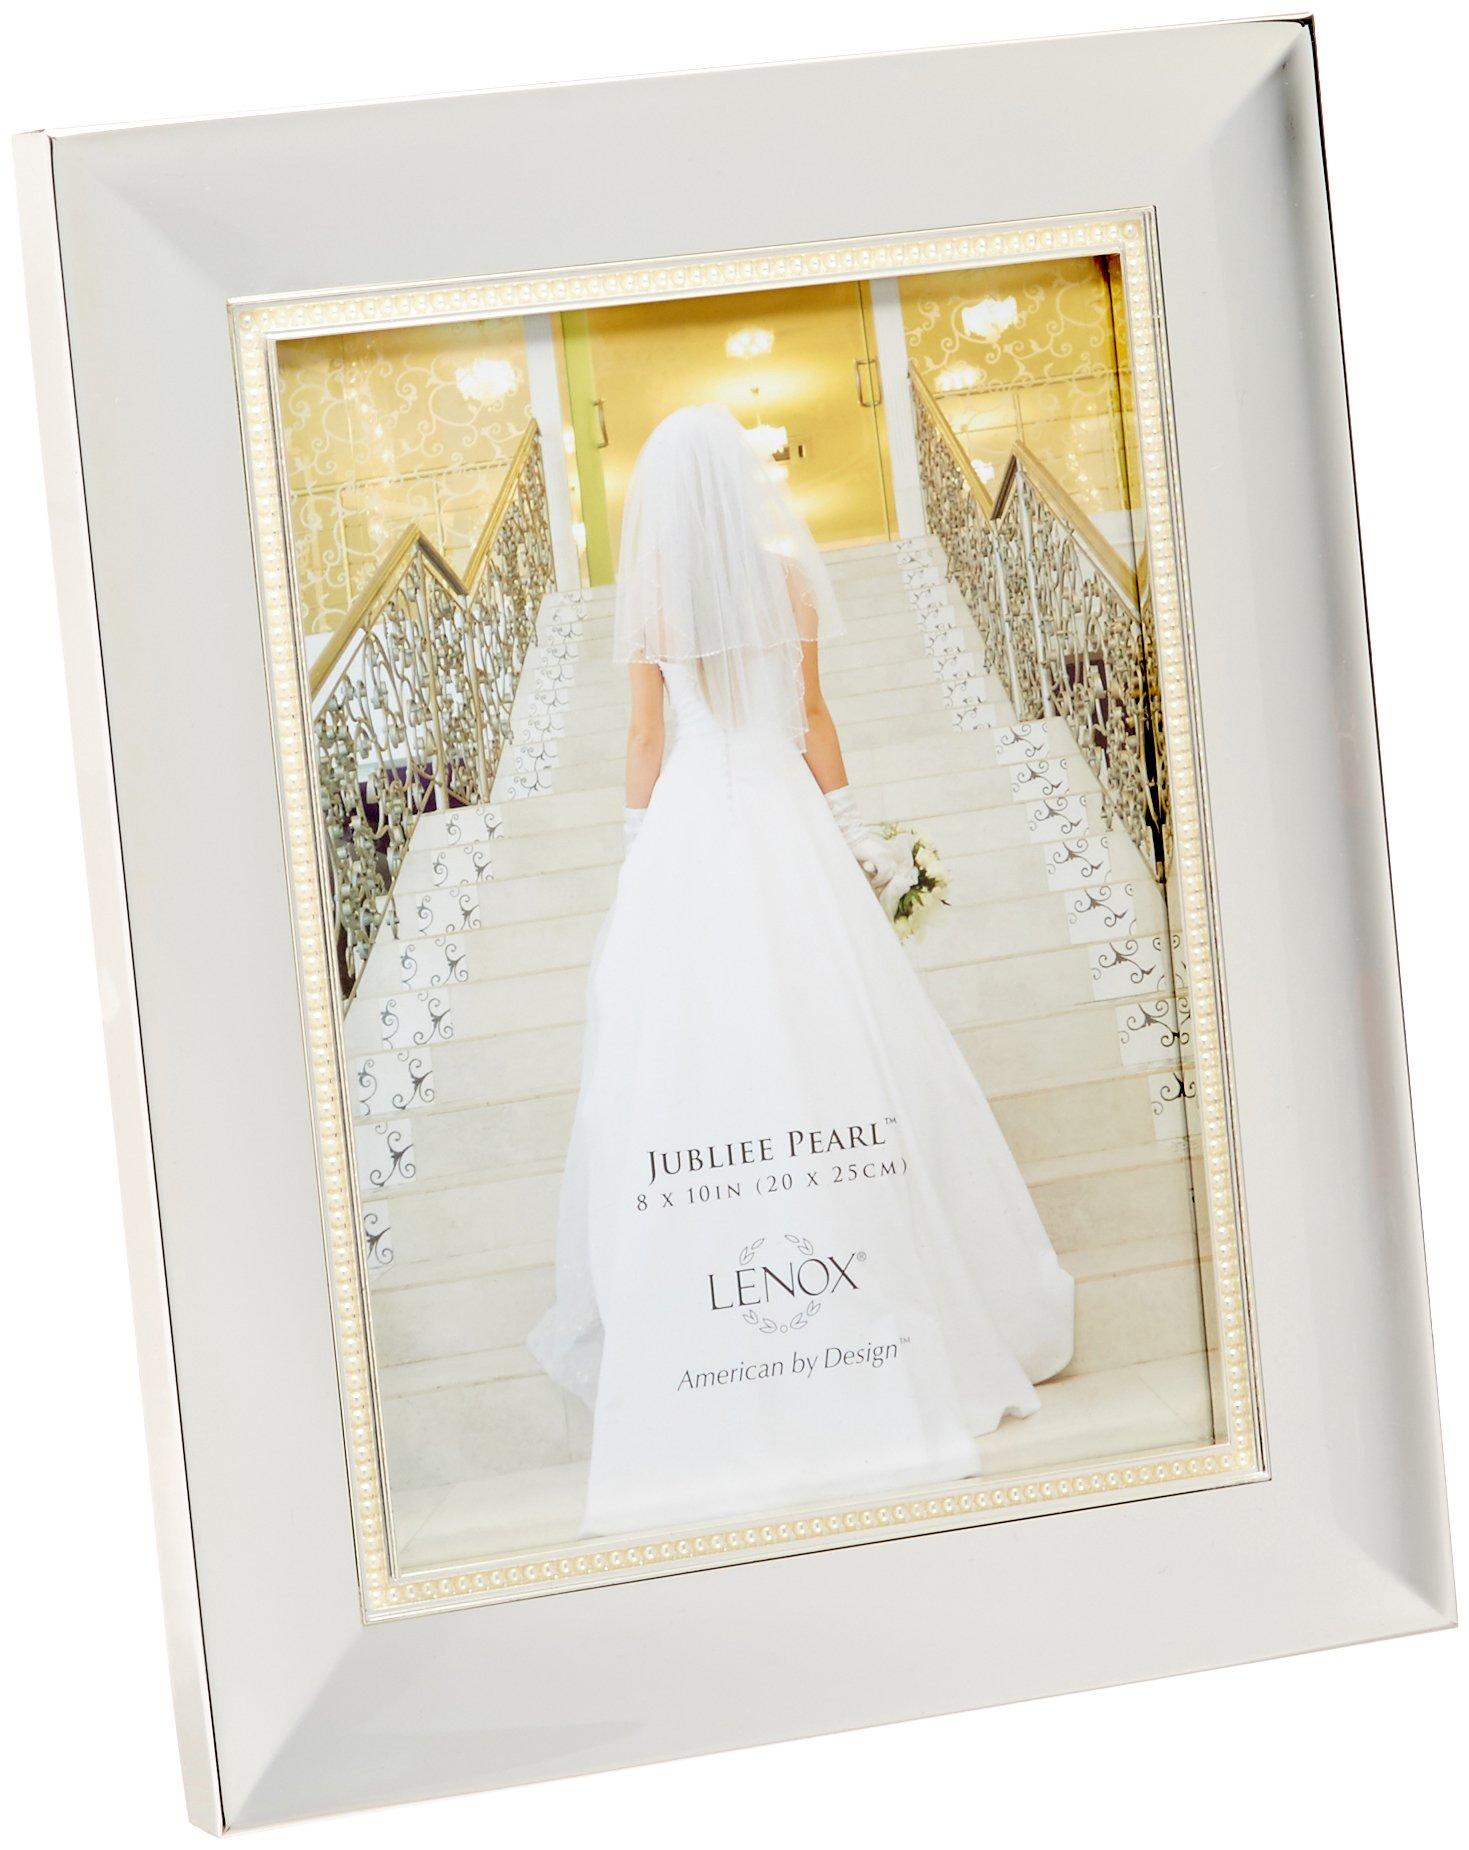 "Lenox Jubilee Pearl 8x10 Frame - Crafted of silver-plated metal Holds an 8"" x 10"" photograph Height: 12 1/2"" - picture-frames, bedroom-decor, bedroom - 710SKcPoUnL -"